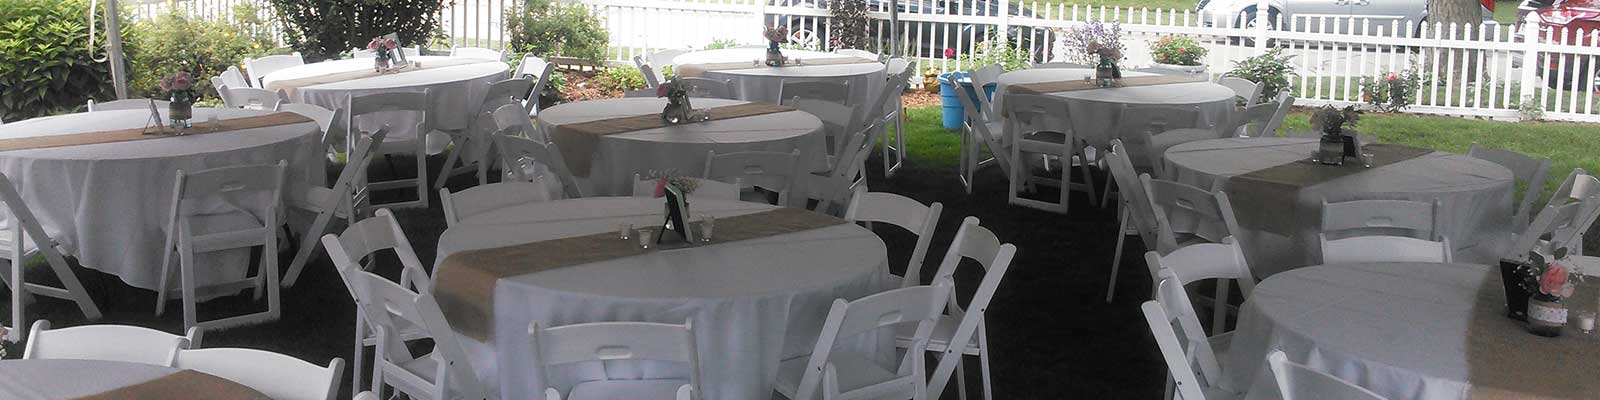 Party rentals in Livingston County and Washtenaw County